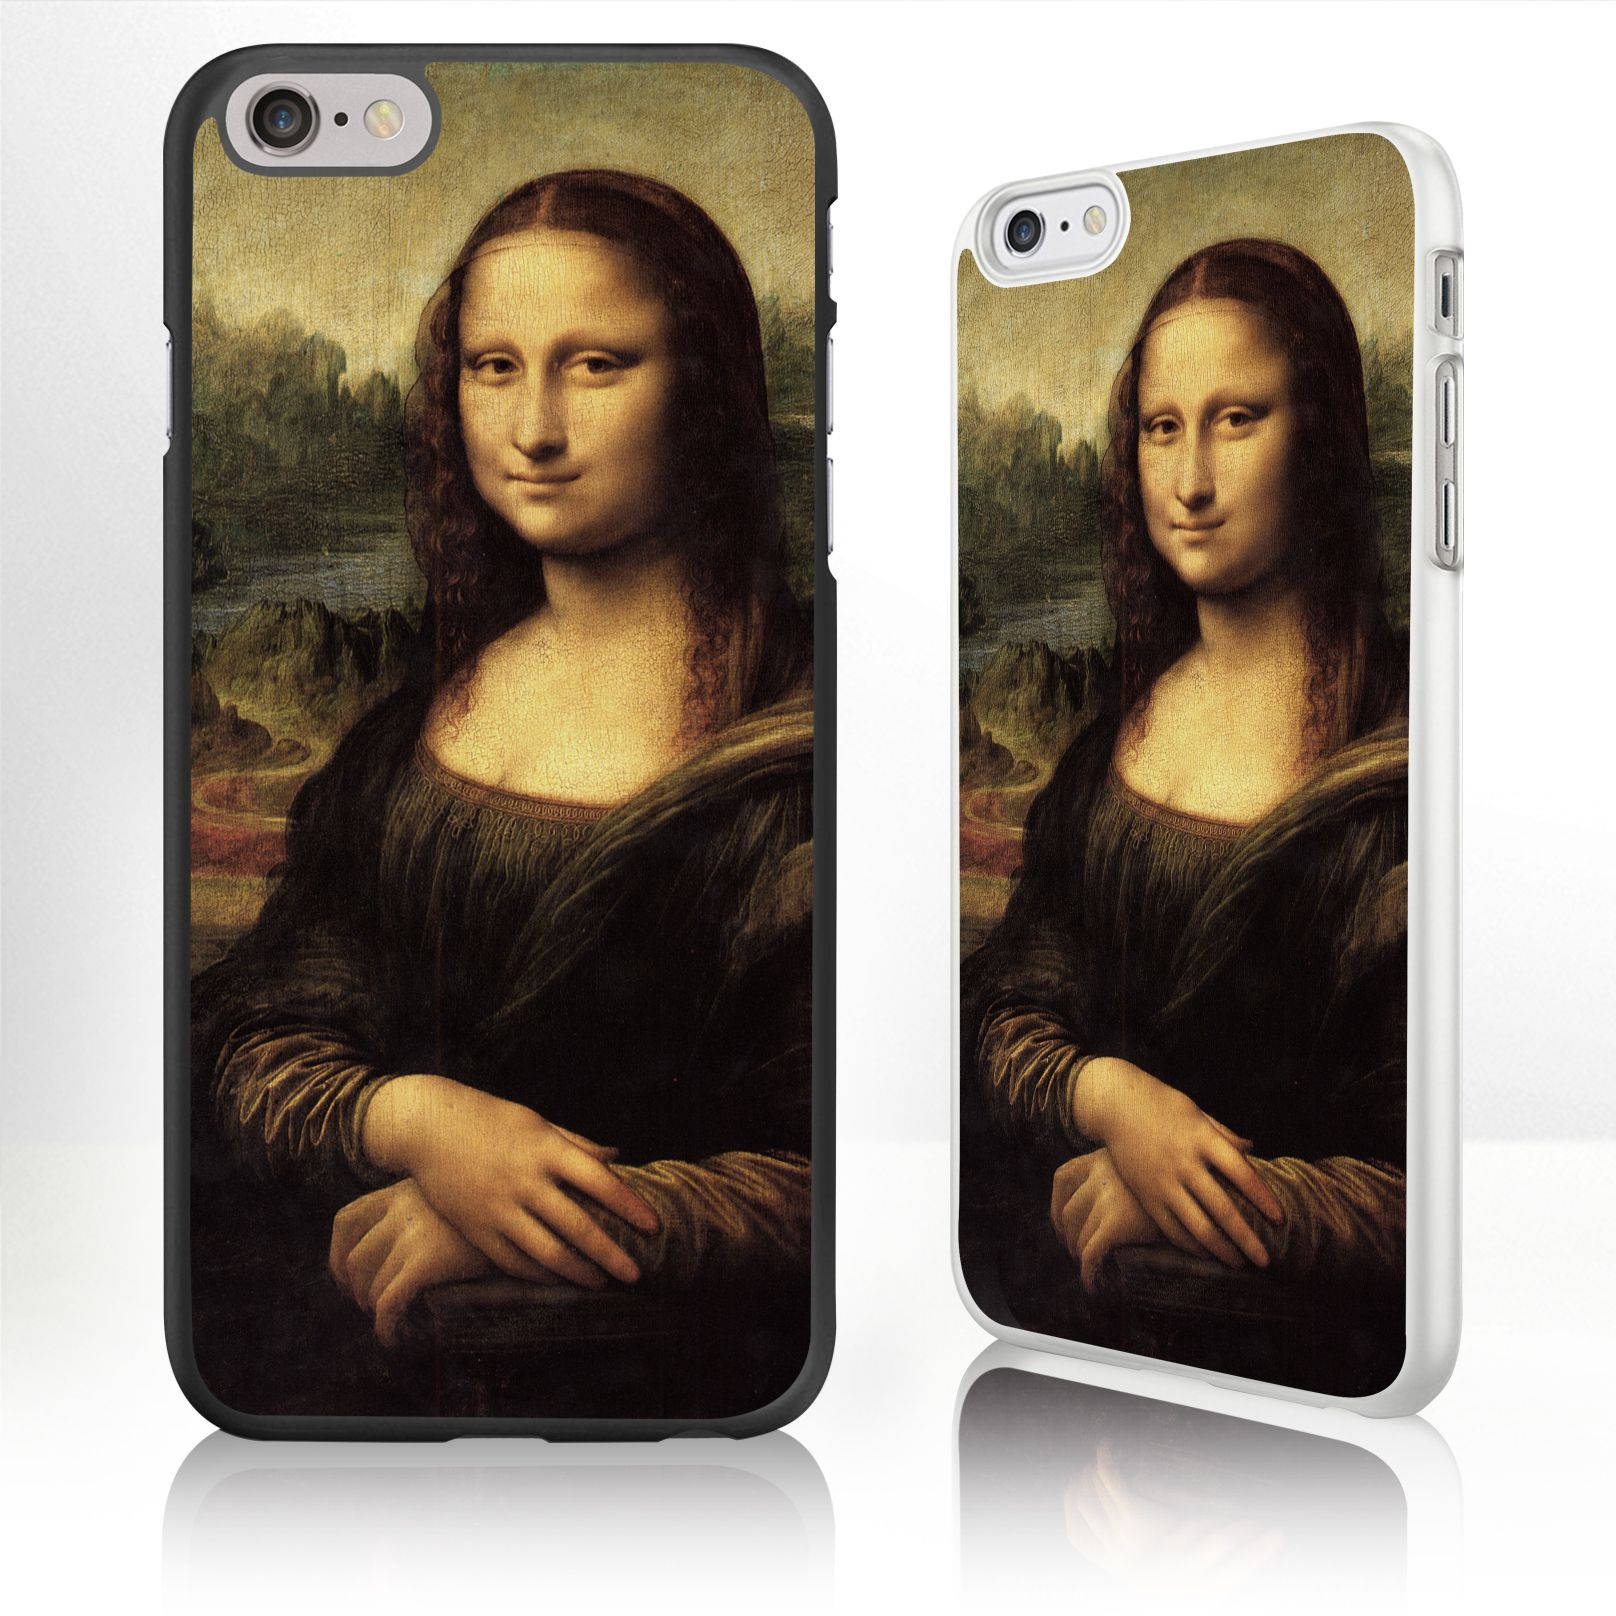 Classic Art Phone Case Cover Iphone Famous Artist Painting 4 4s 5 5s 5c 6 6s 7 8 Ebay Famous Artists Paintings Art Phone Cases Classic Art